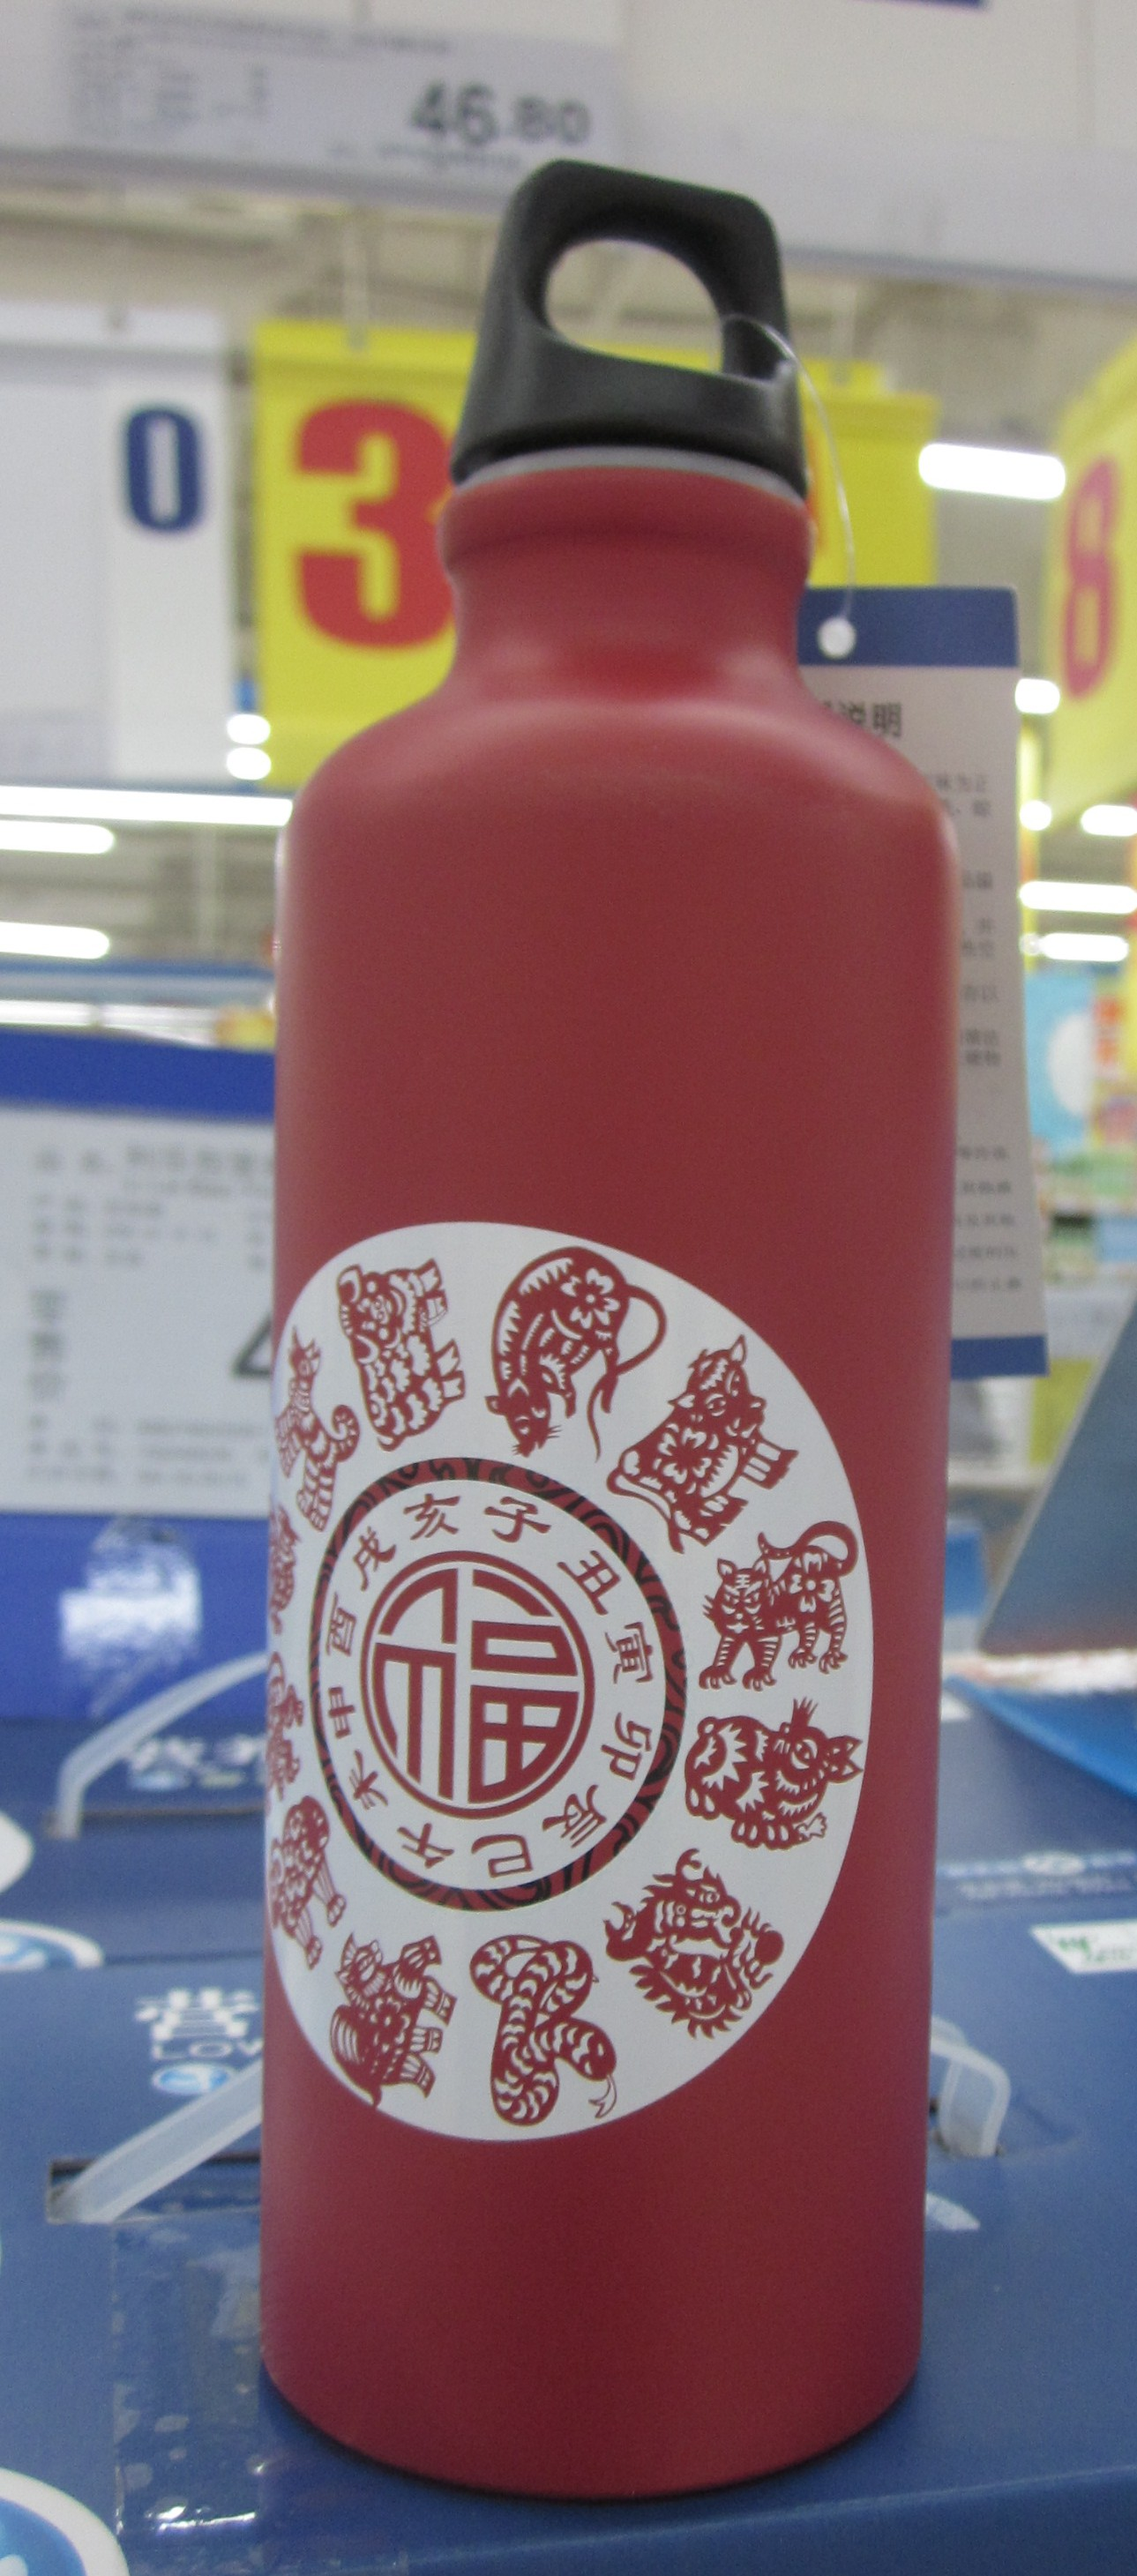 Promotional flask bottle in China